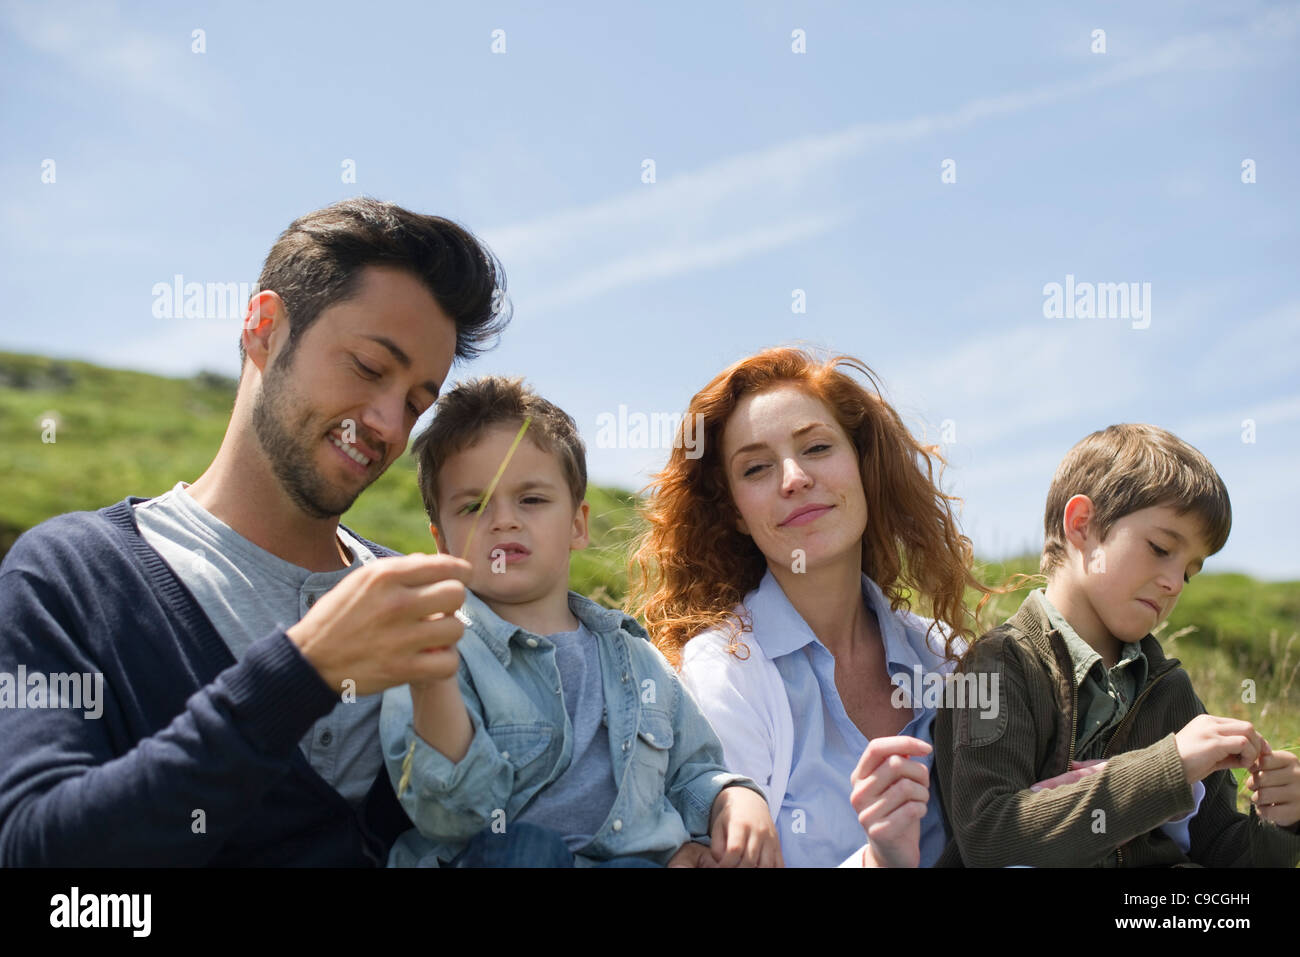 Parents and young boys in nature Stock Photo